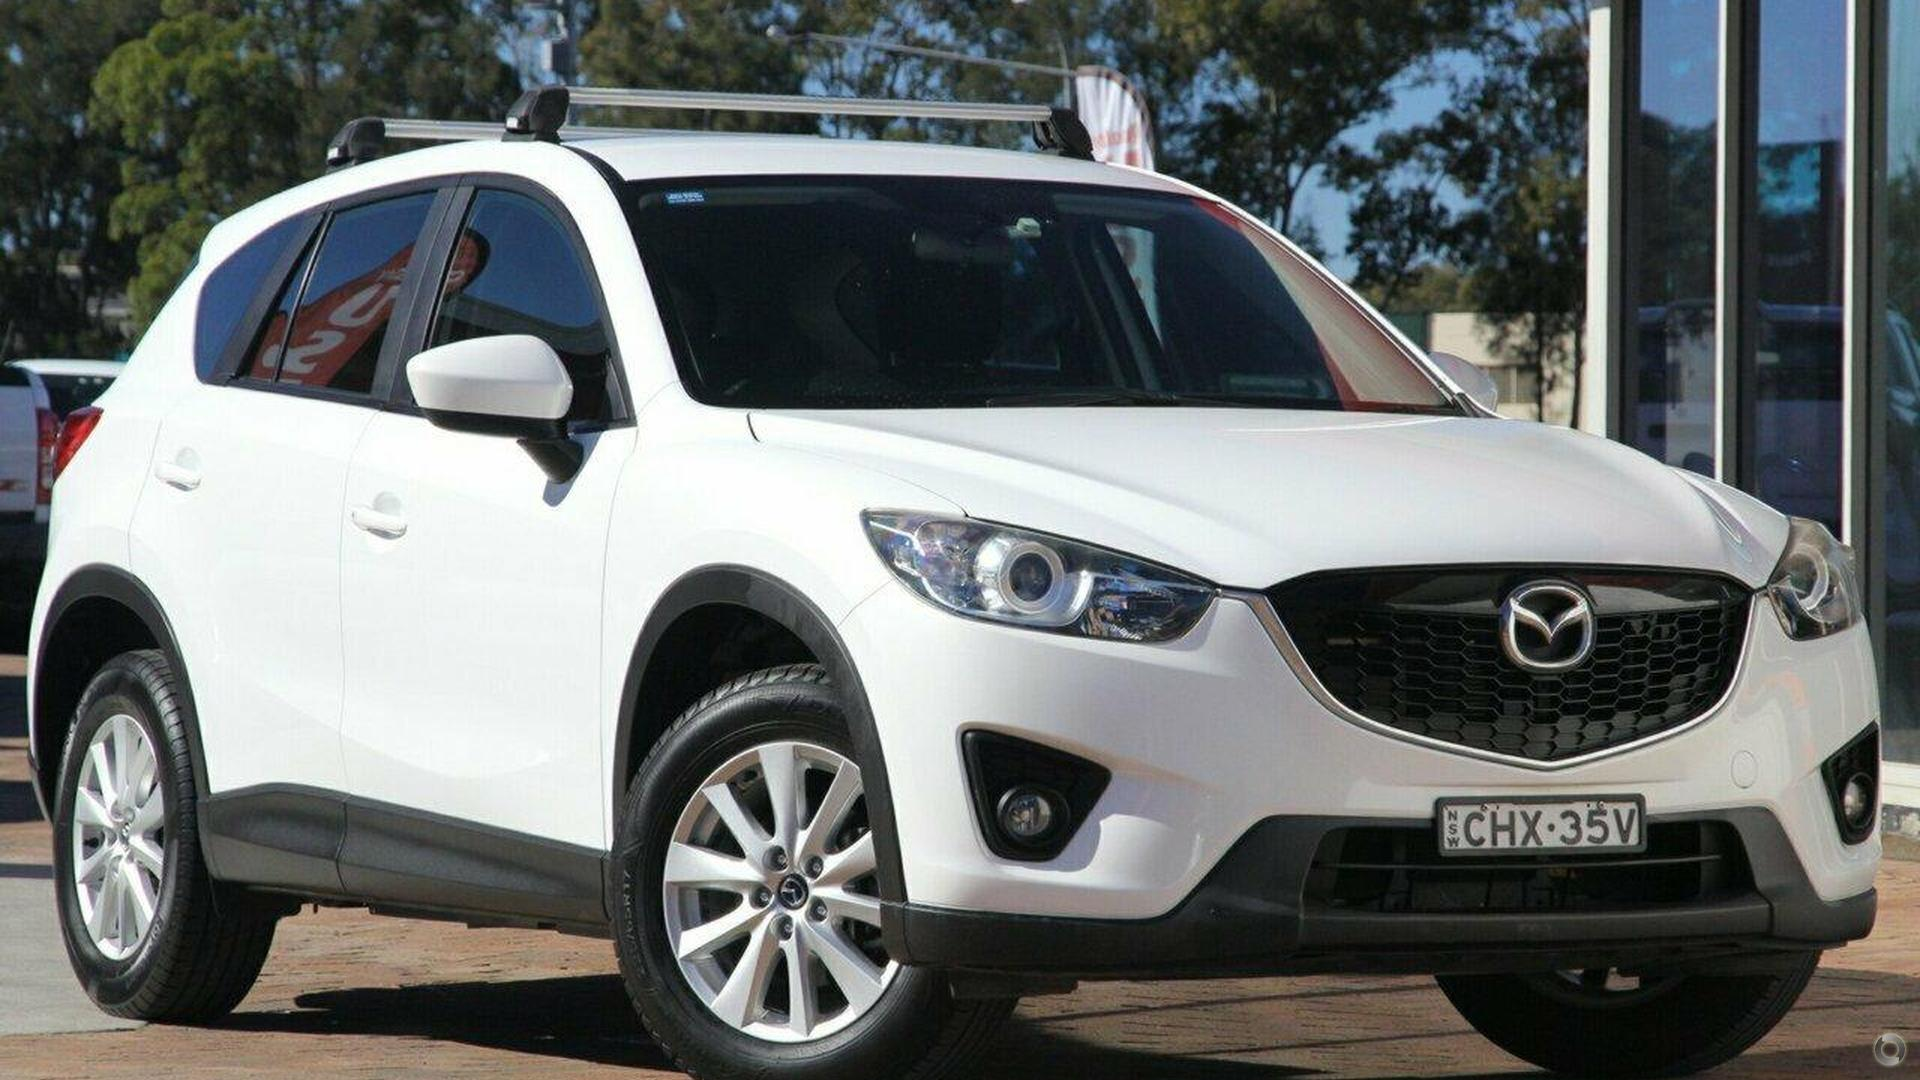 2012 Mazda Cx-5 KE Series